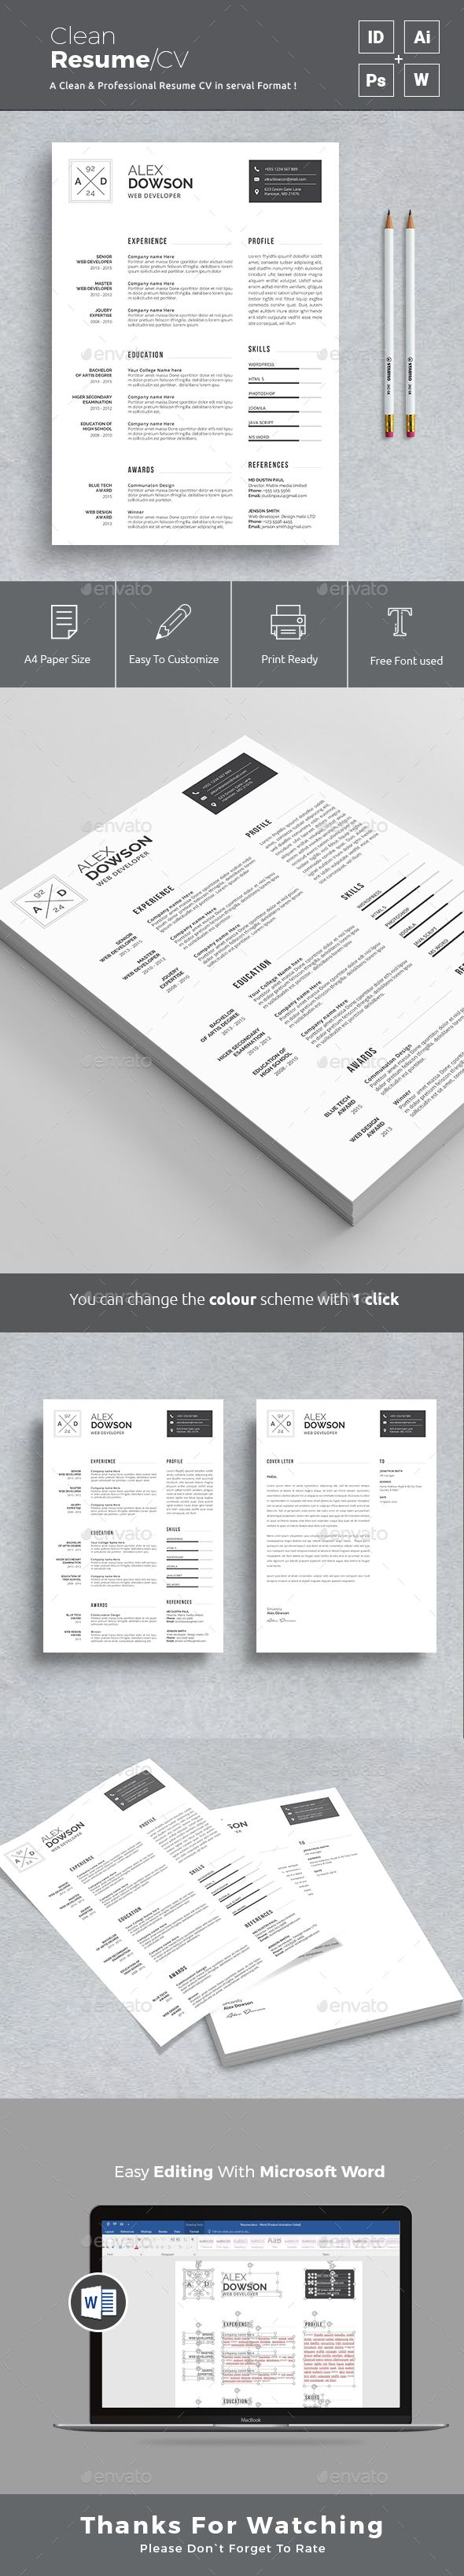 Simple Minimalist Resume Design Template - Resumes Stationery Design Template PSD, InDesign iNDD, AI Illustrator. Download here: https://graphicriver.net/item/resume/19396797?ref=yinkira